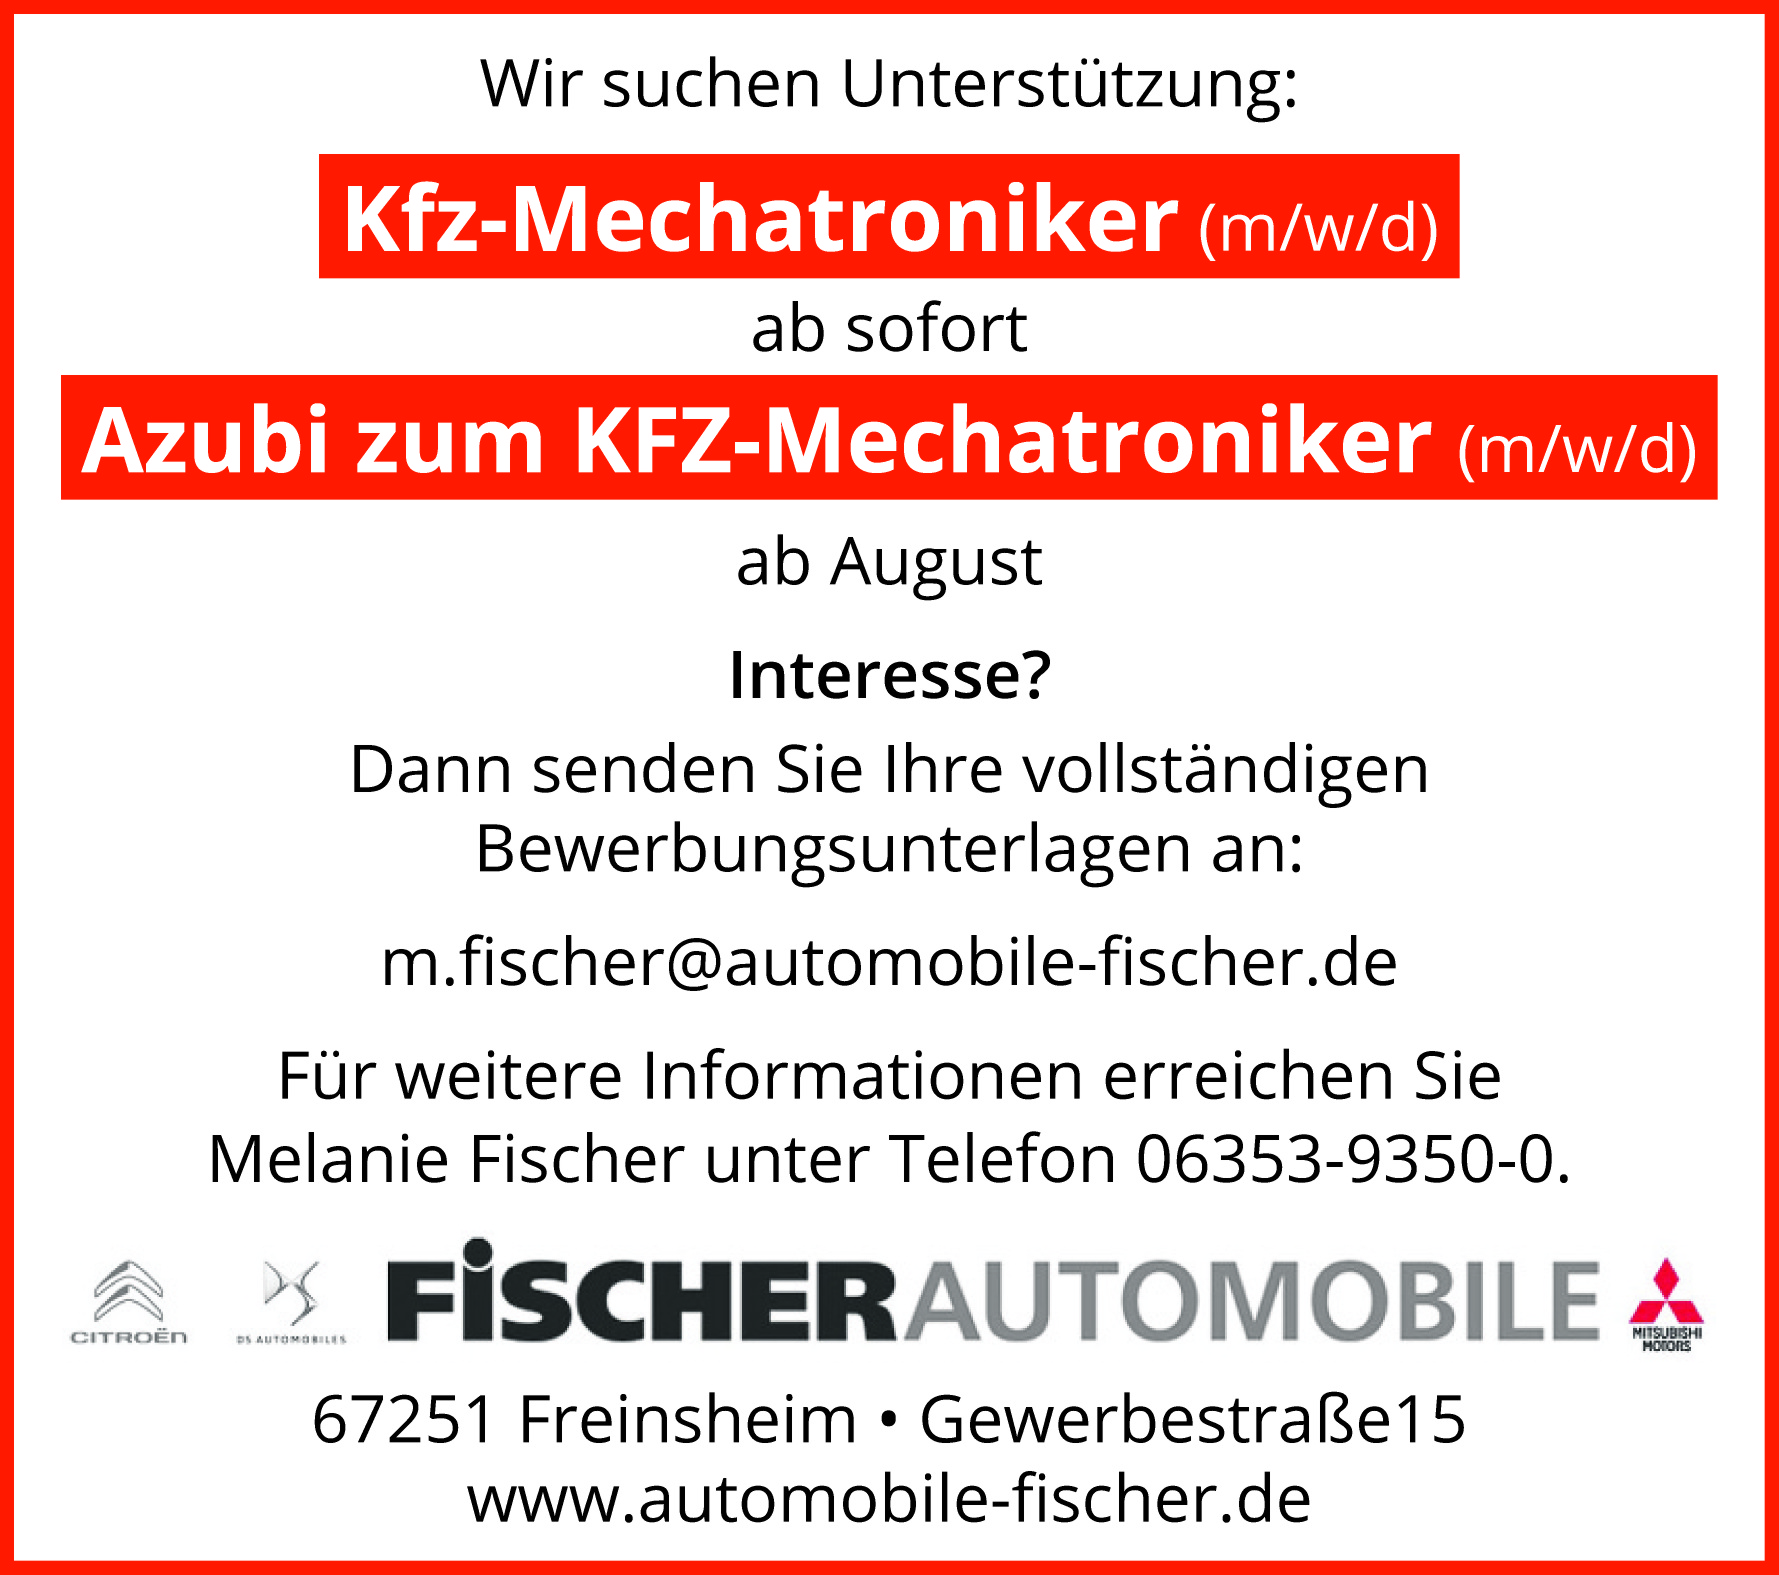 Fischer Automobile